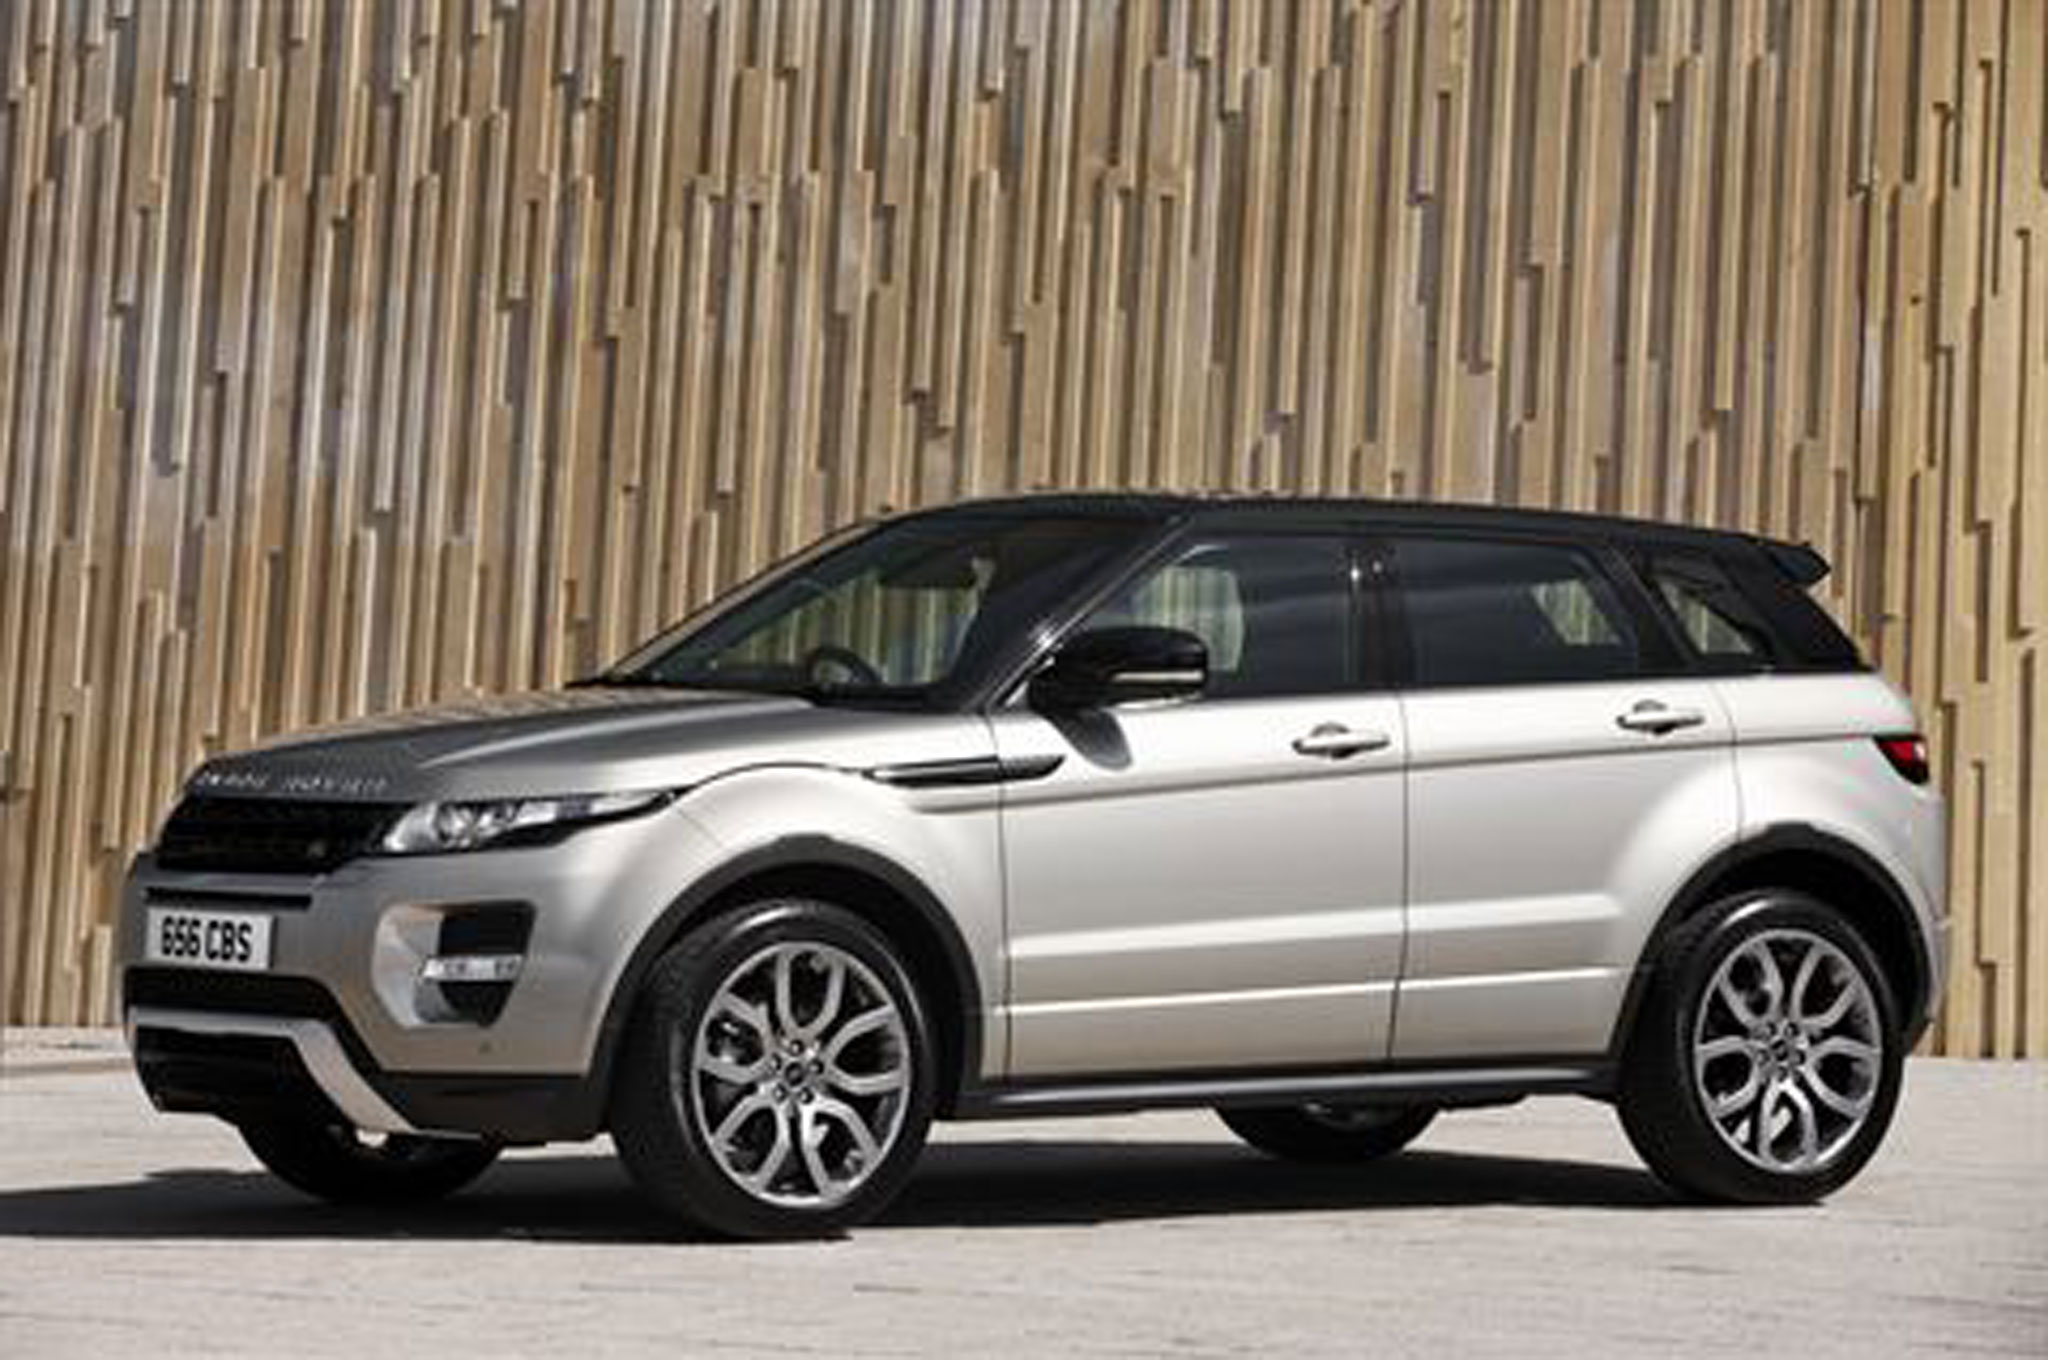 Land Rover Range Rover Evoque E Left Side View